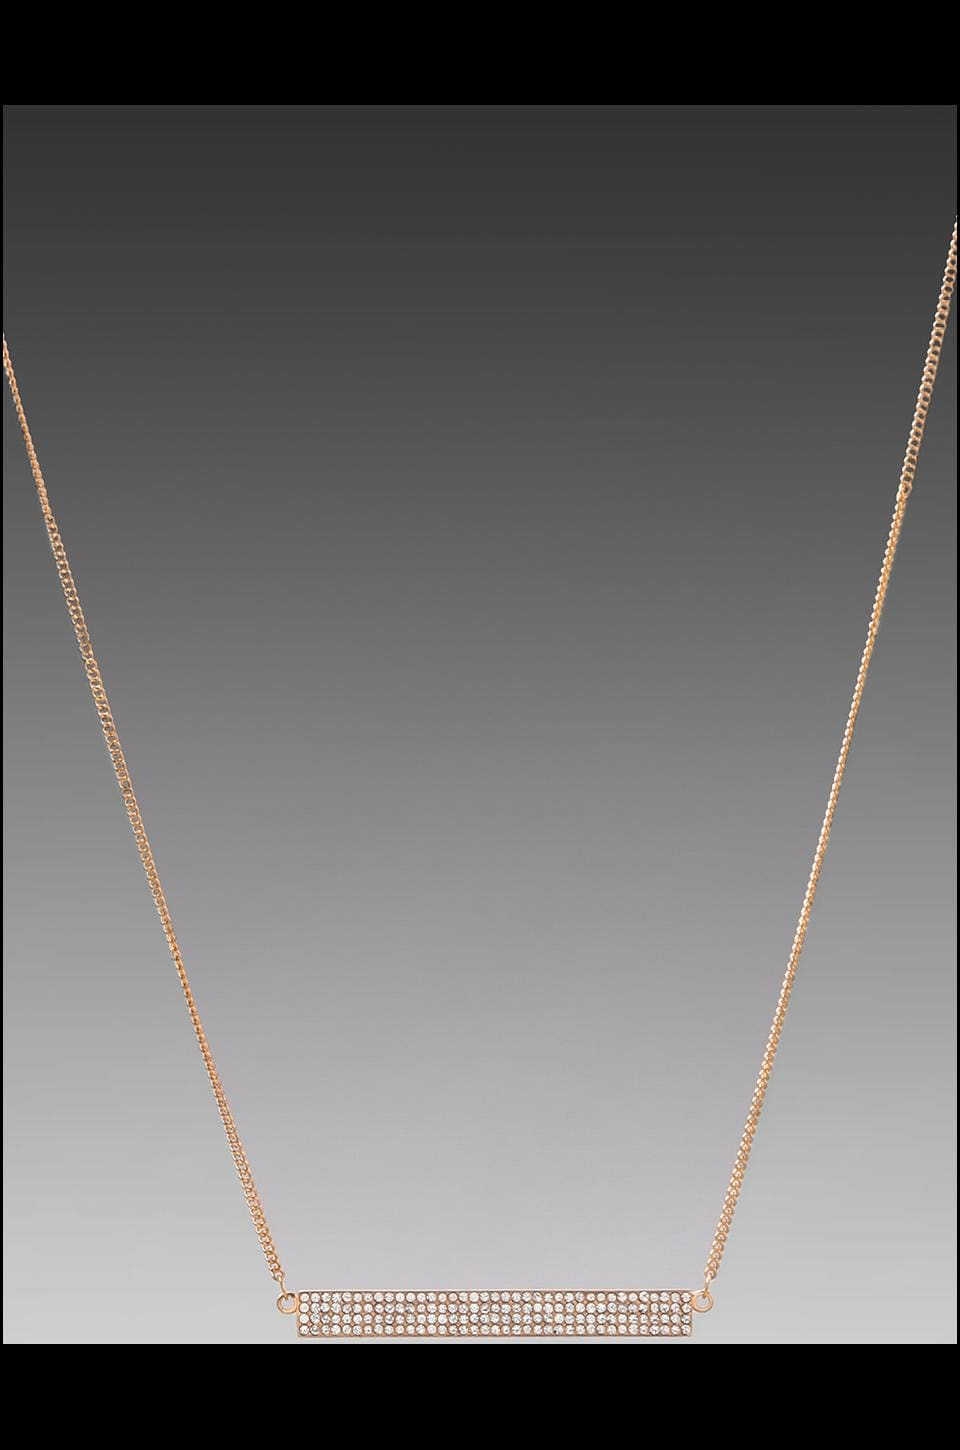 Rebecca Minkoff Pave Id Plate Necklace in Rose Gold